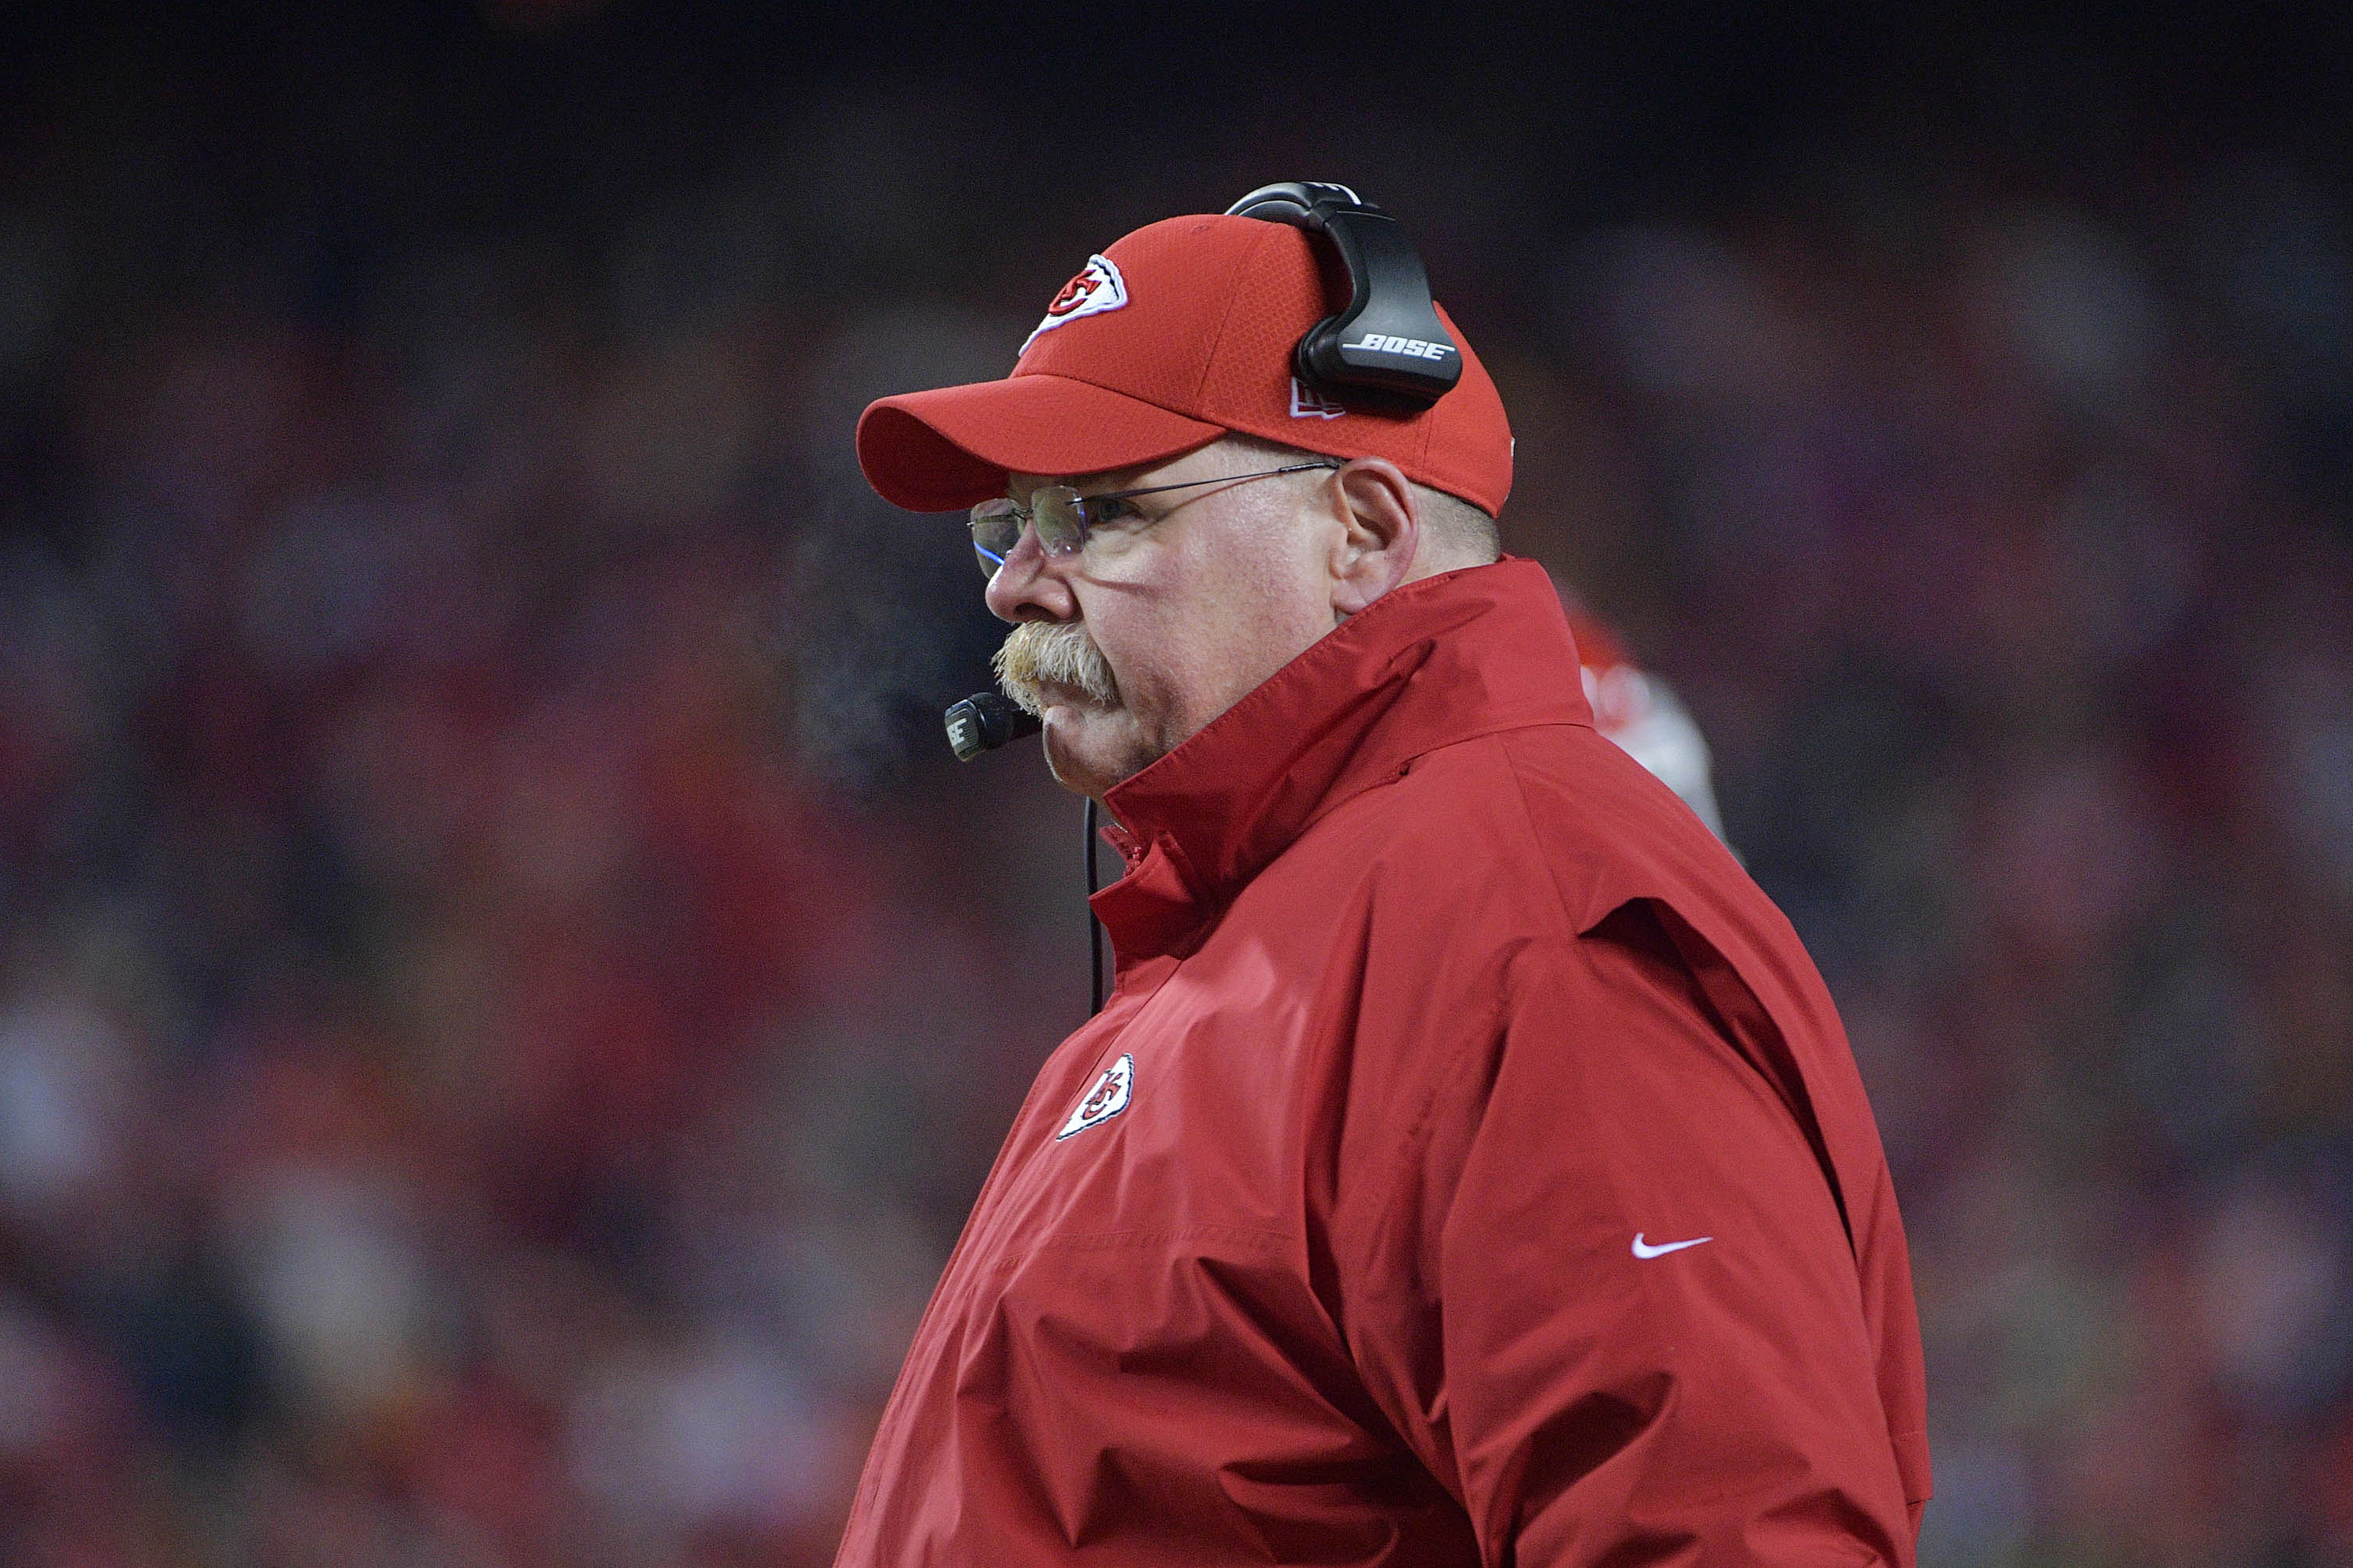 Andy Reid in Kansas City